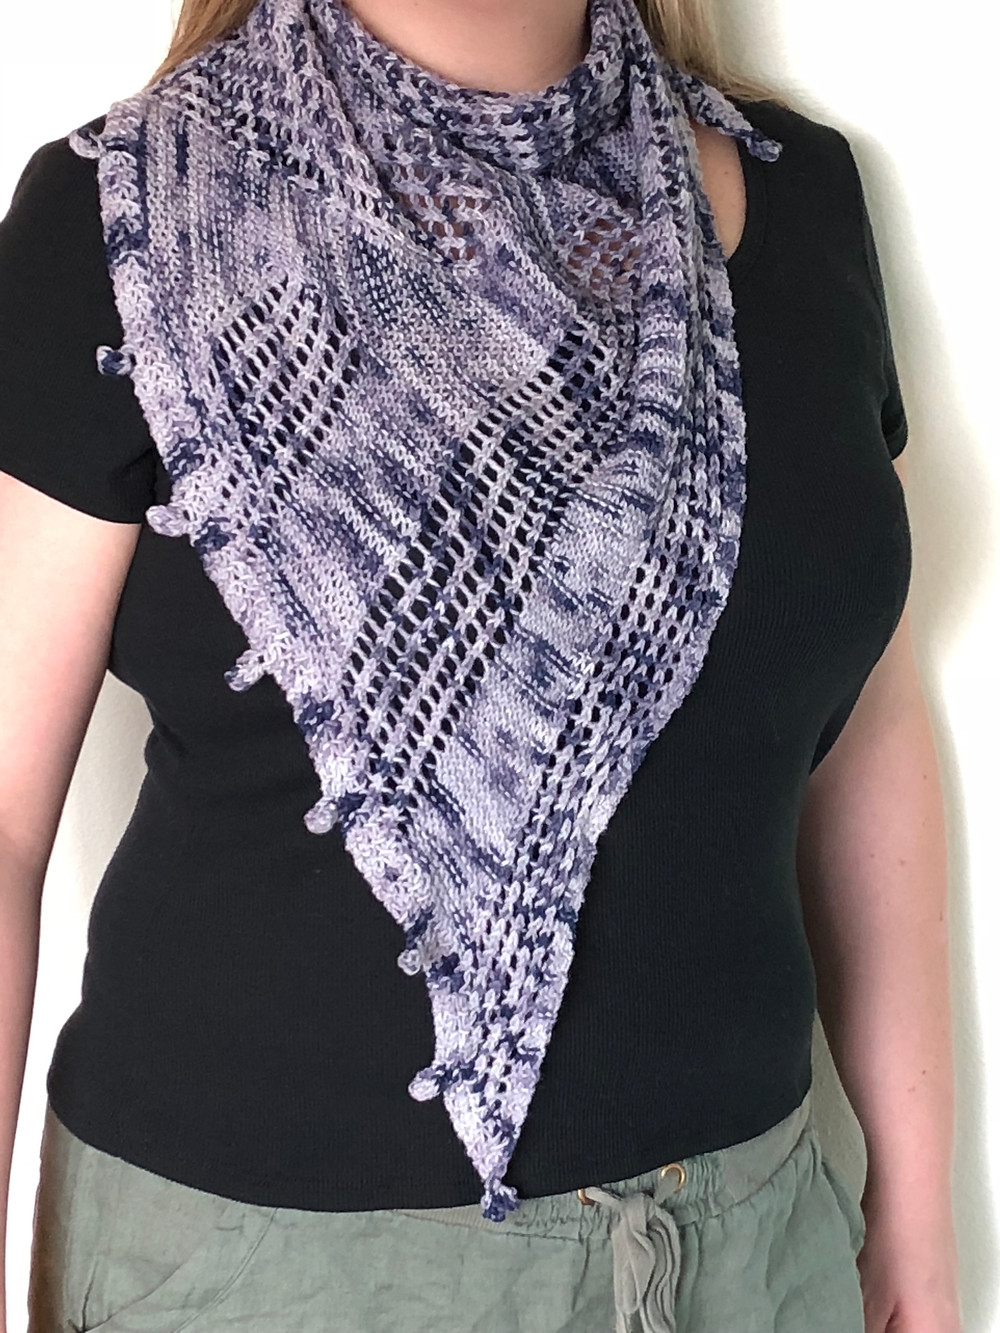 A purple hand-knit triangular shawl featuring sections of garter-stitch & mesh with a bobble bind-off.